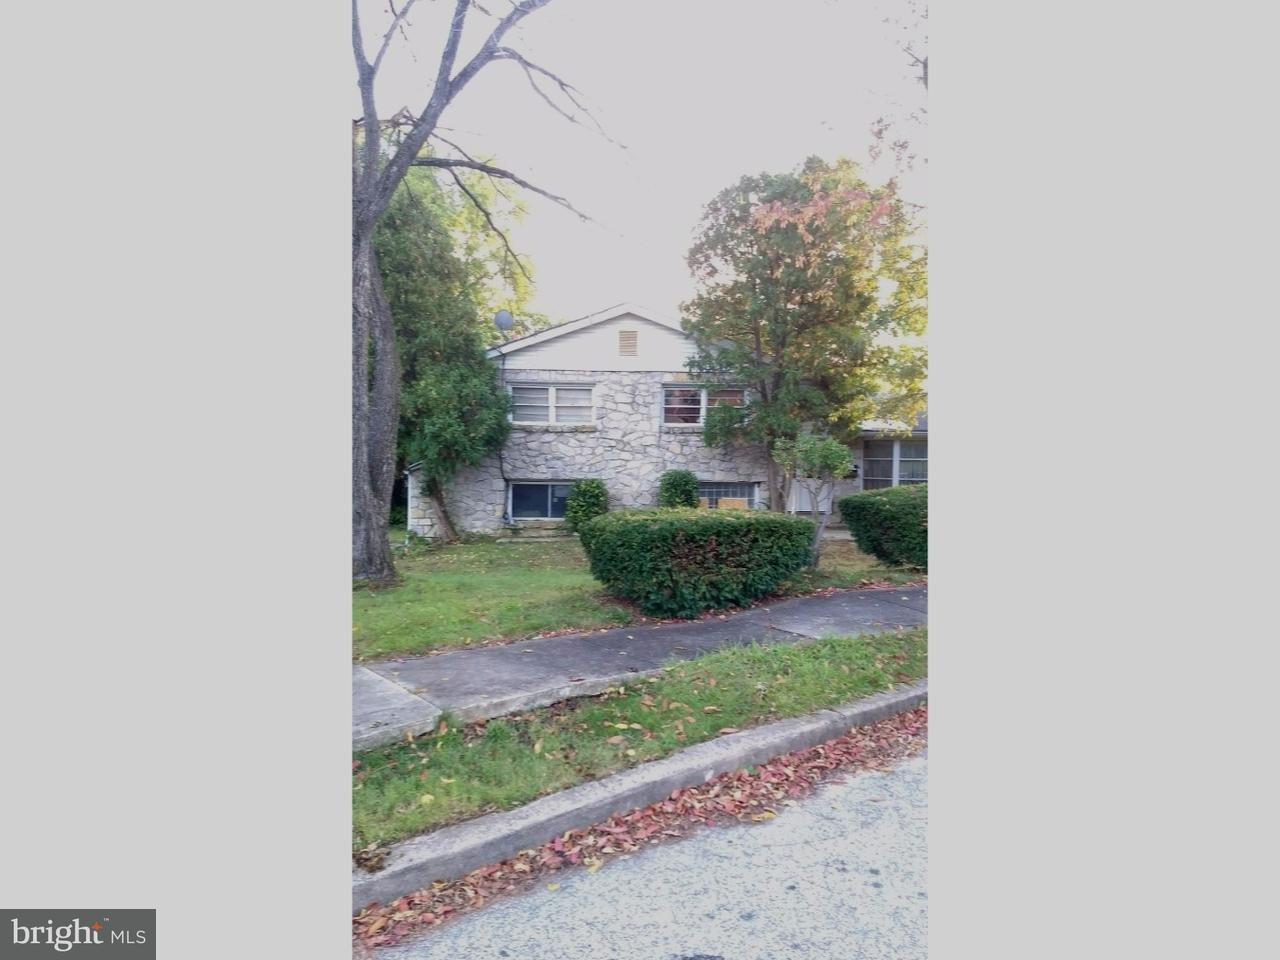 7138 N Mount Pleasant Philadelphia, PA 19119